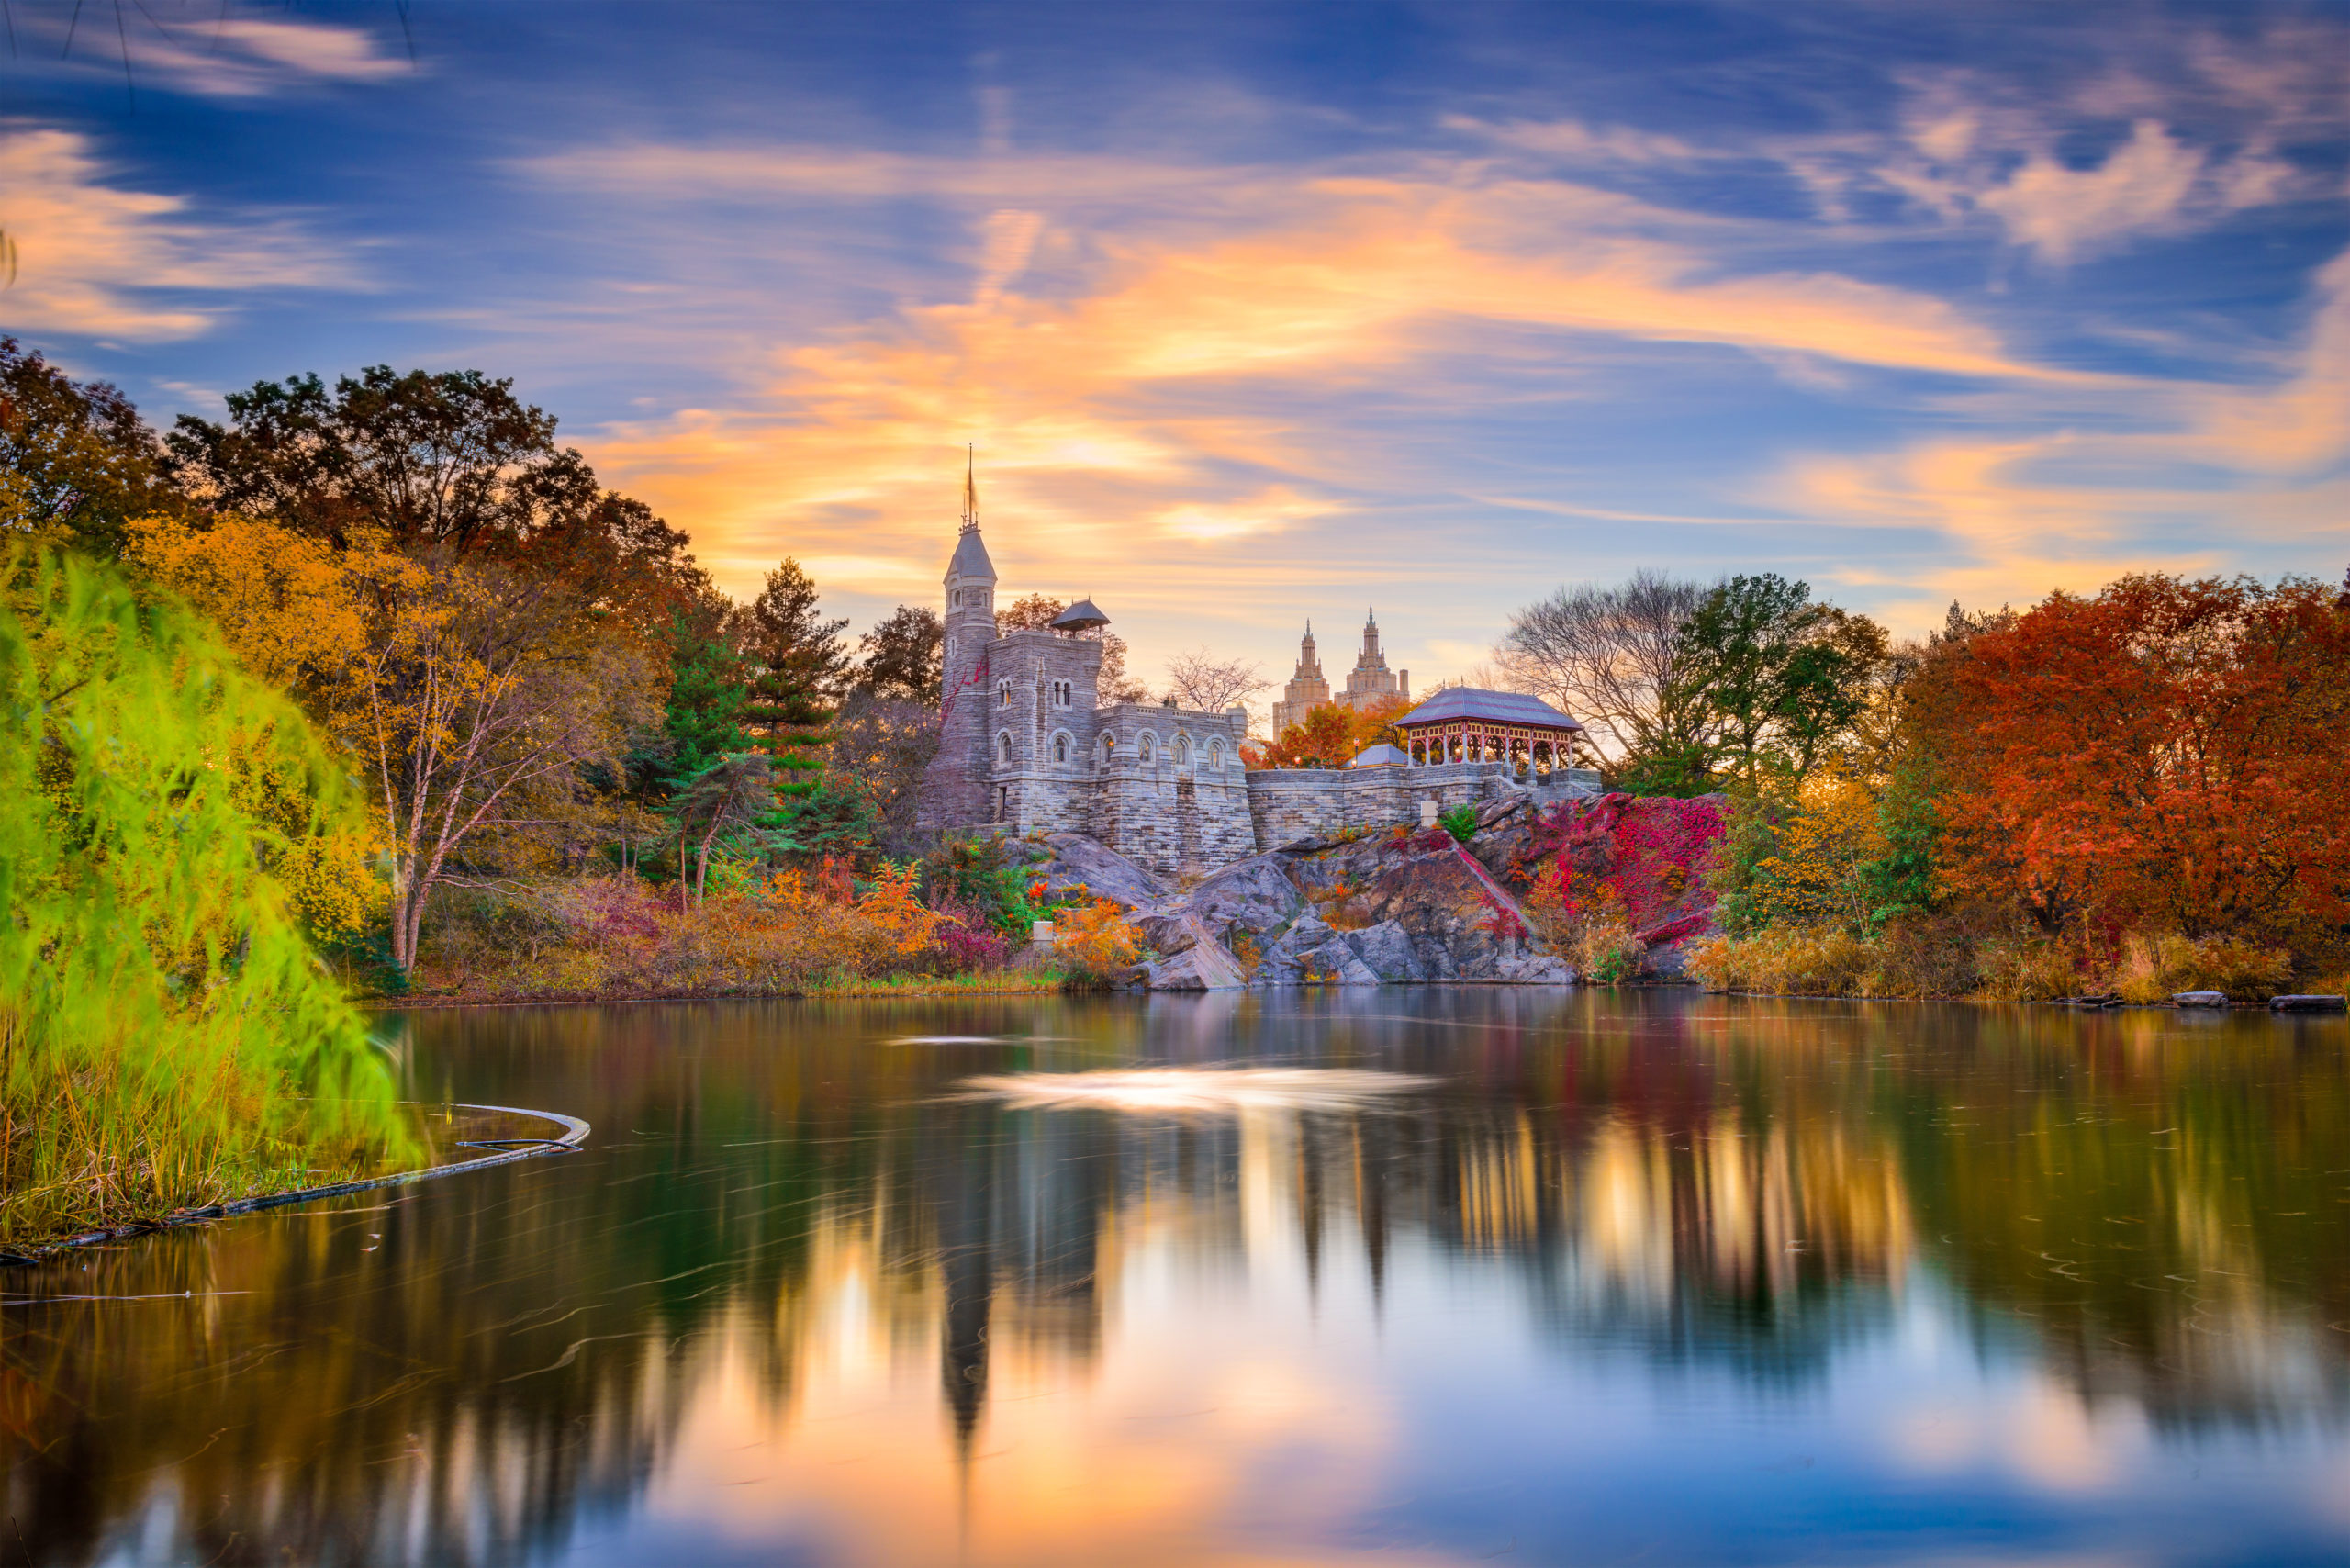 Belvedere Castle in the Fall in Central Park in New York City.